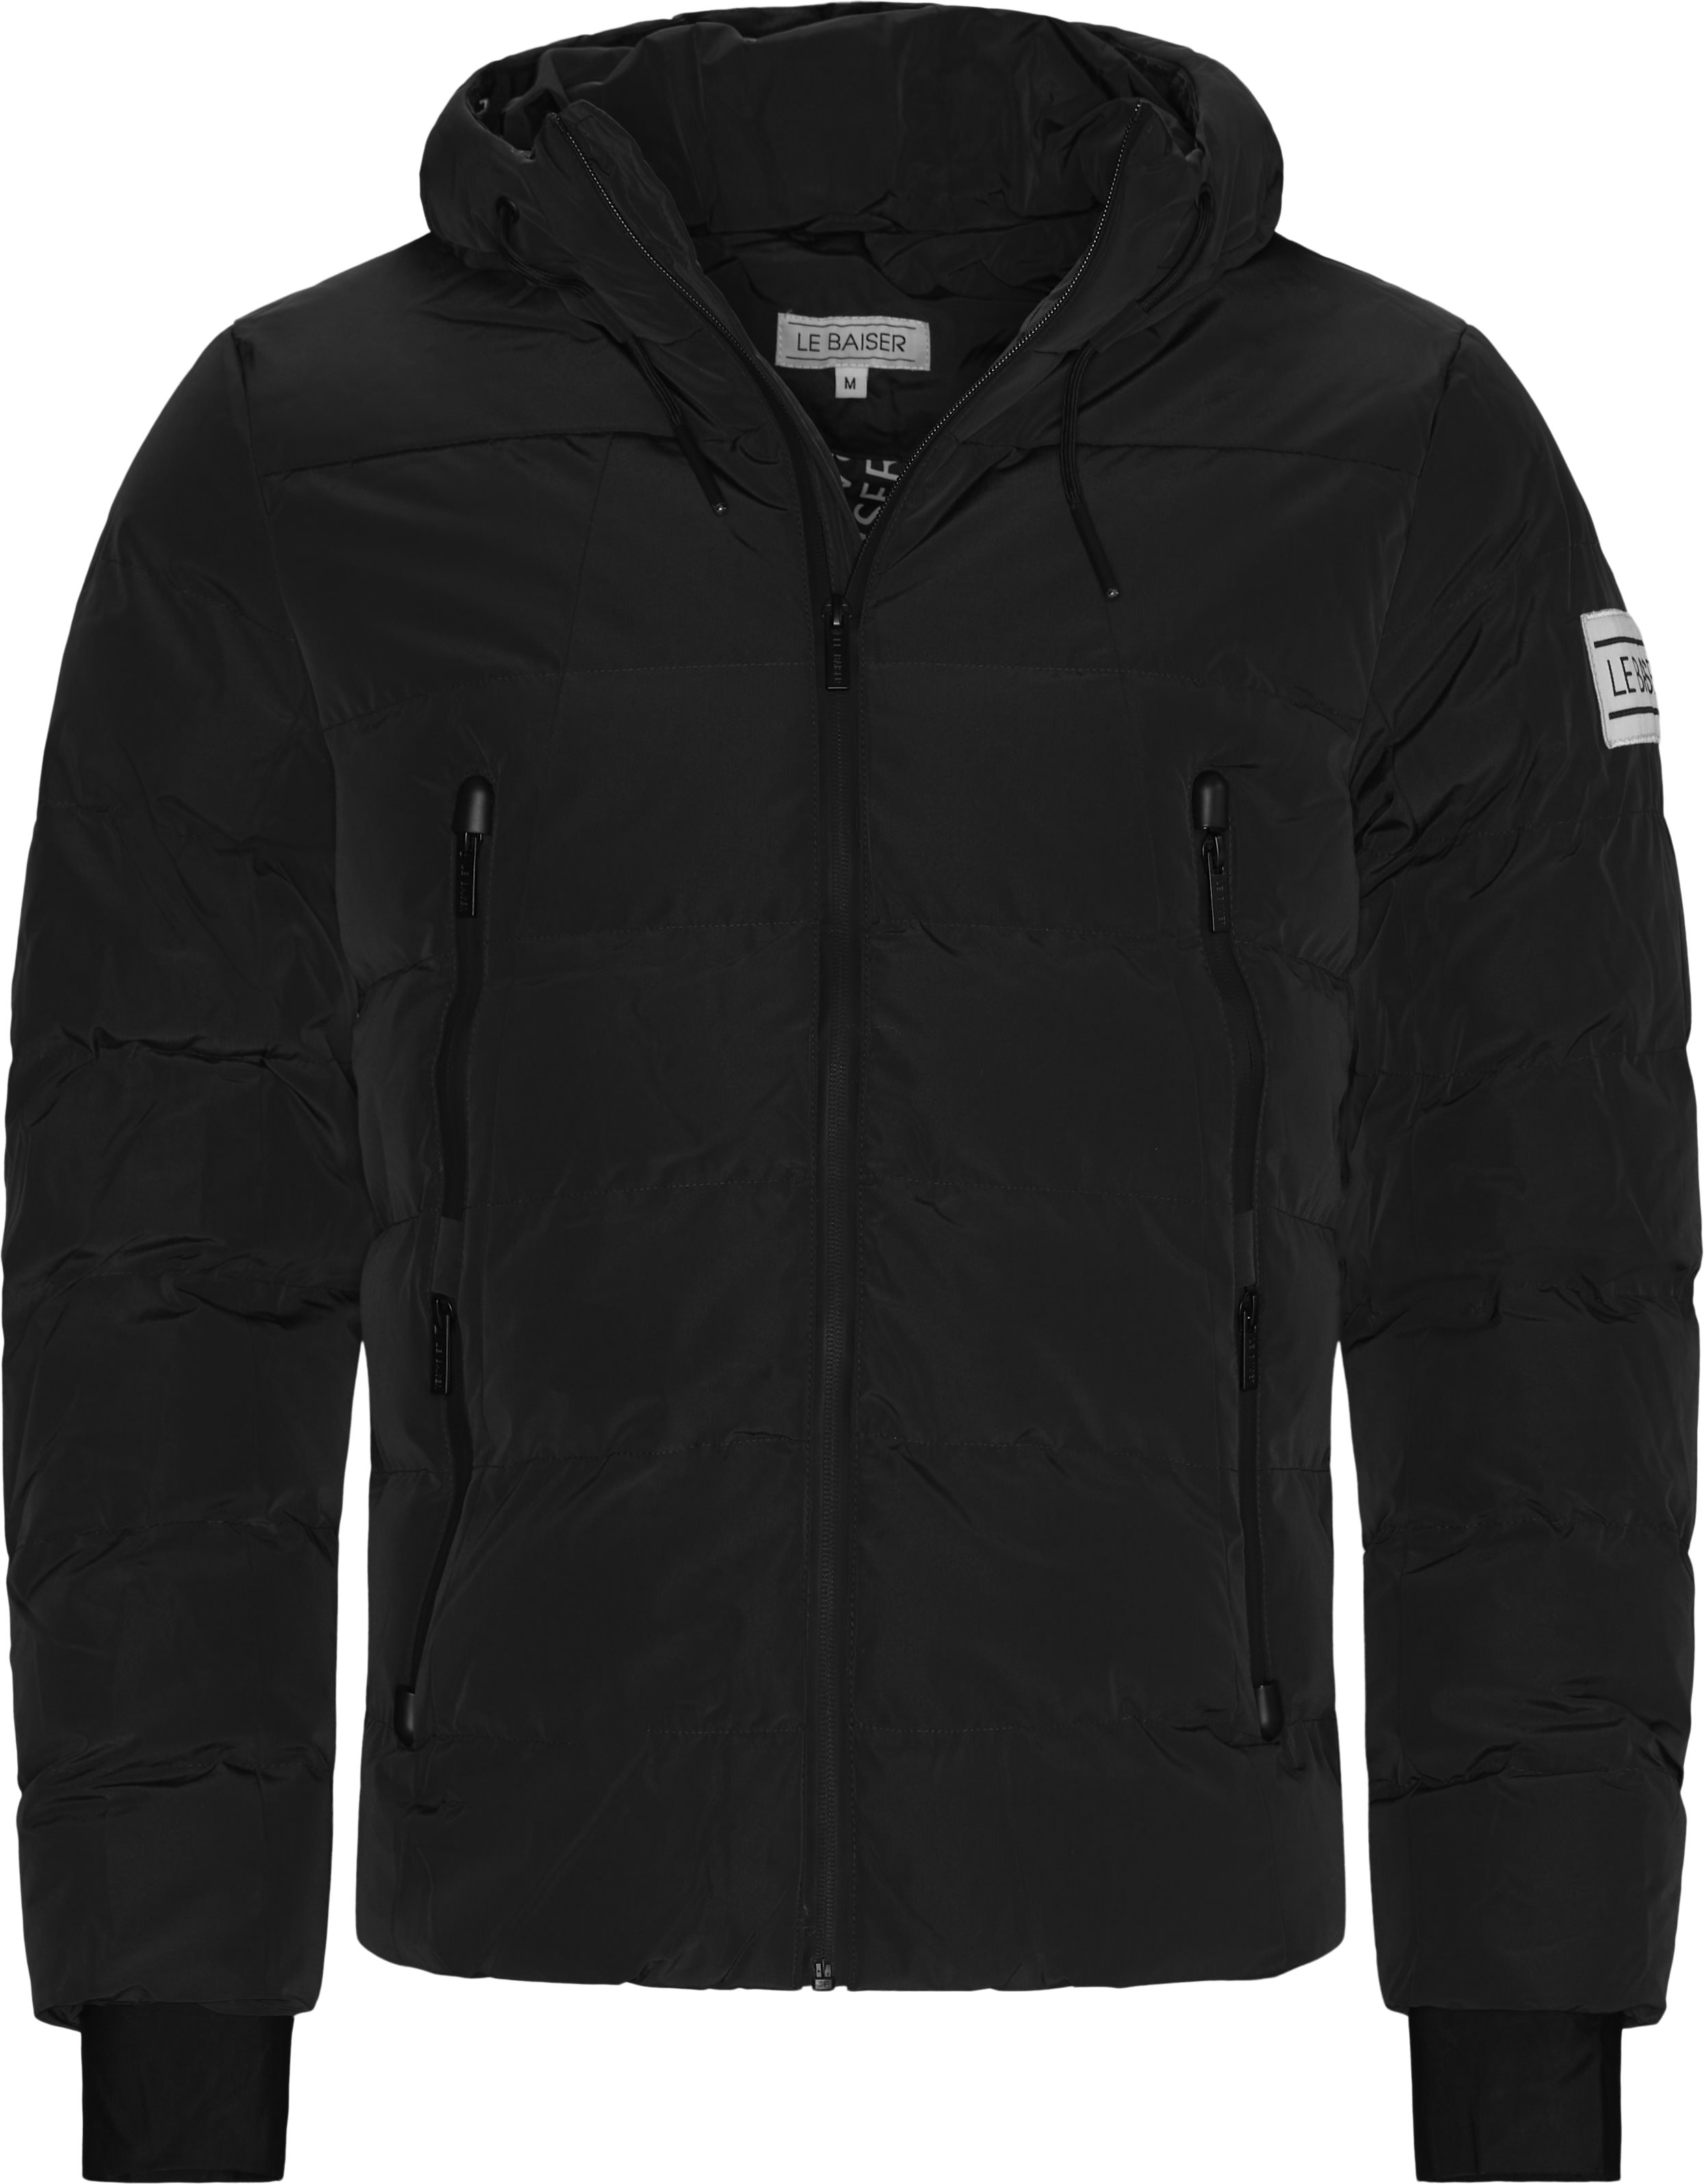 Dodge Jacket - Jackets - Regular - Black